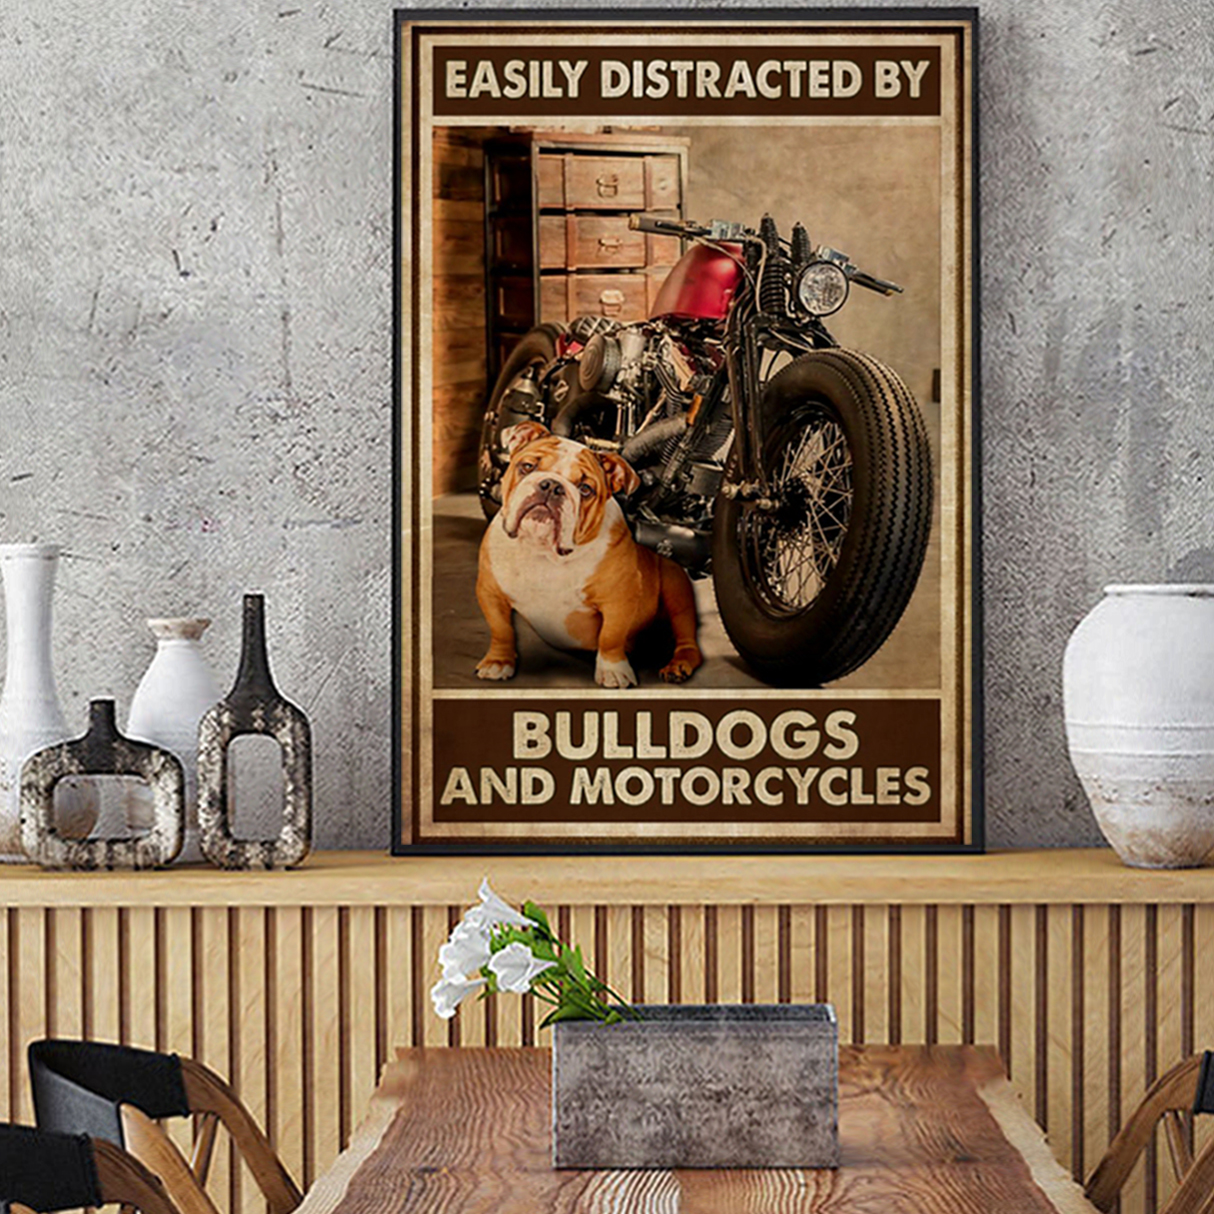 Easily distracted by bulldog and motorcycles poster A2